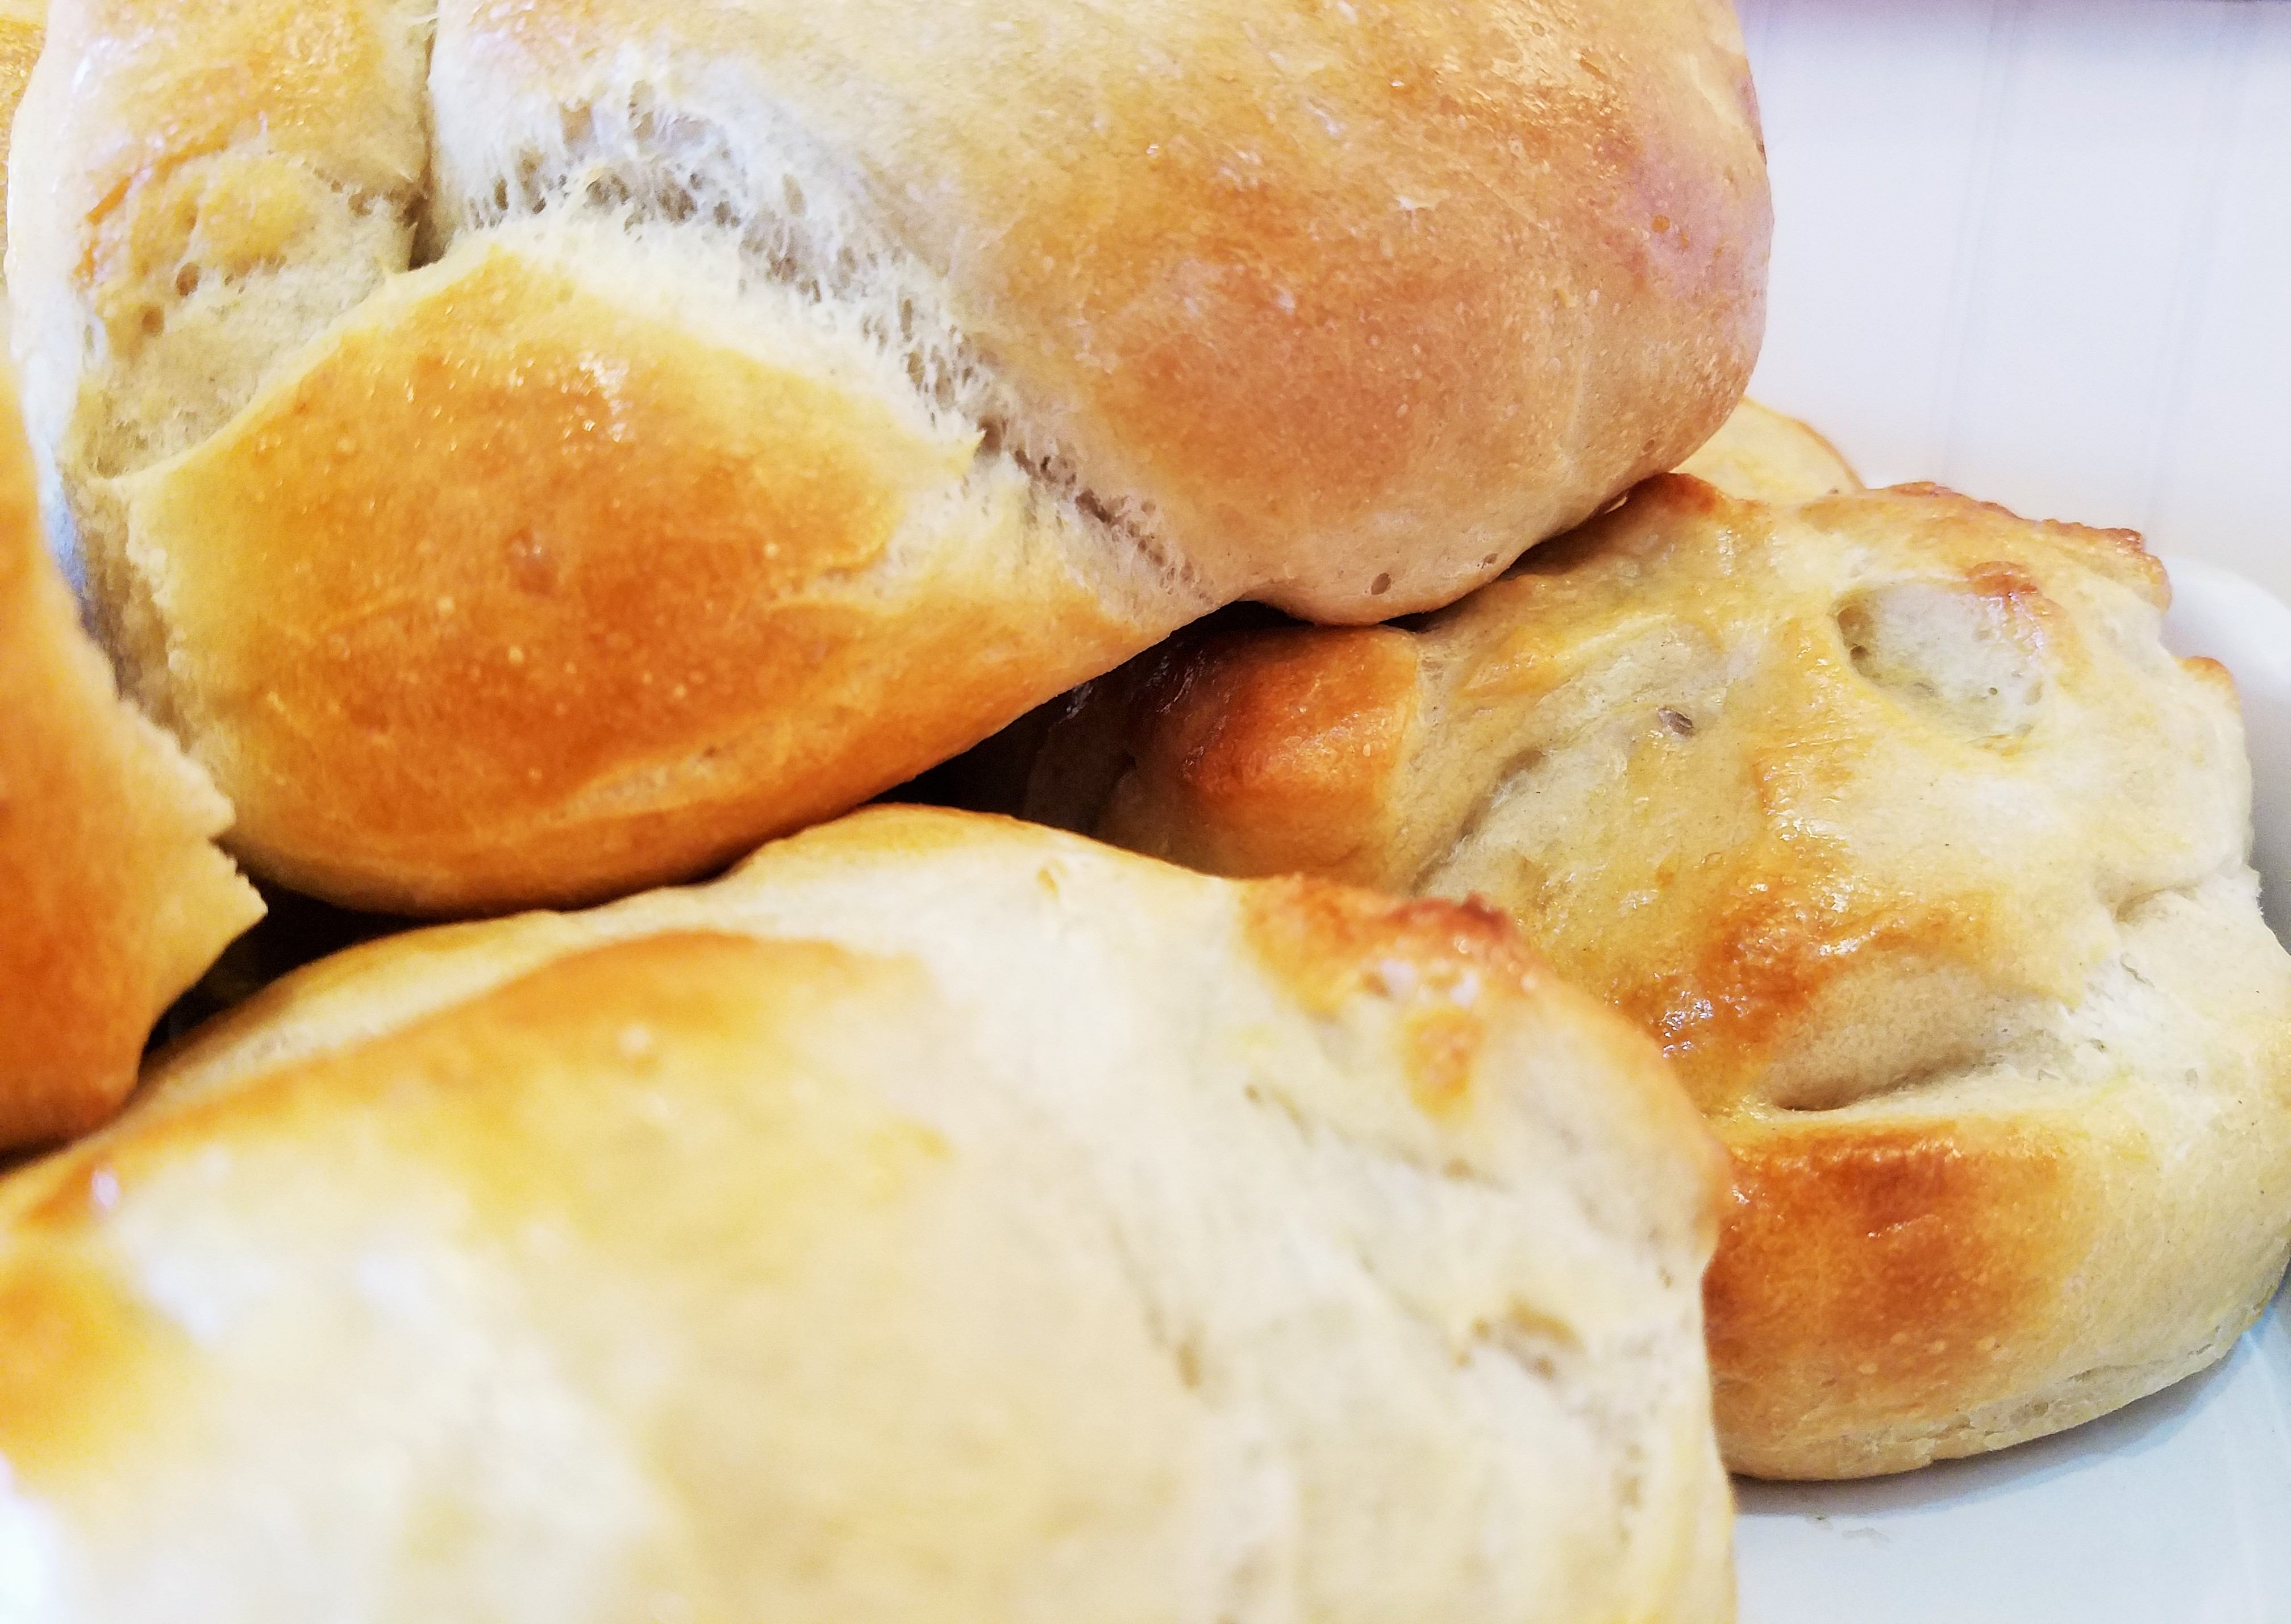 Freshly baked bread rolls from a bread maker